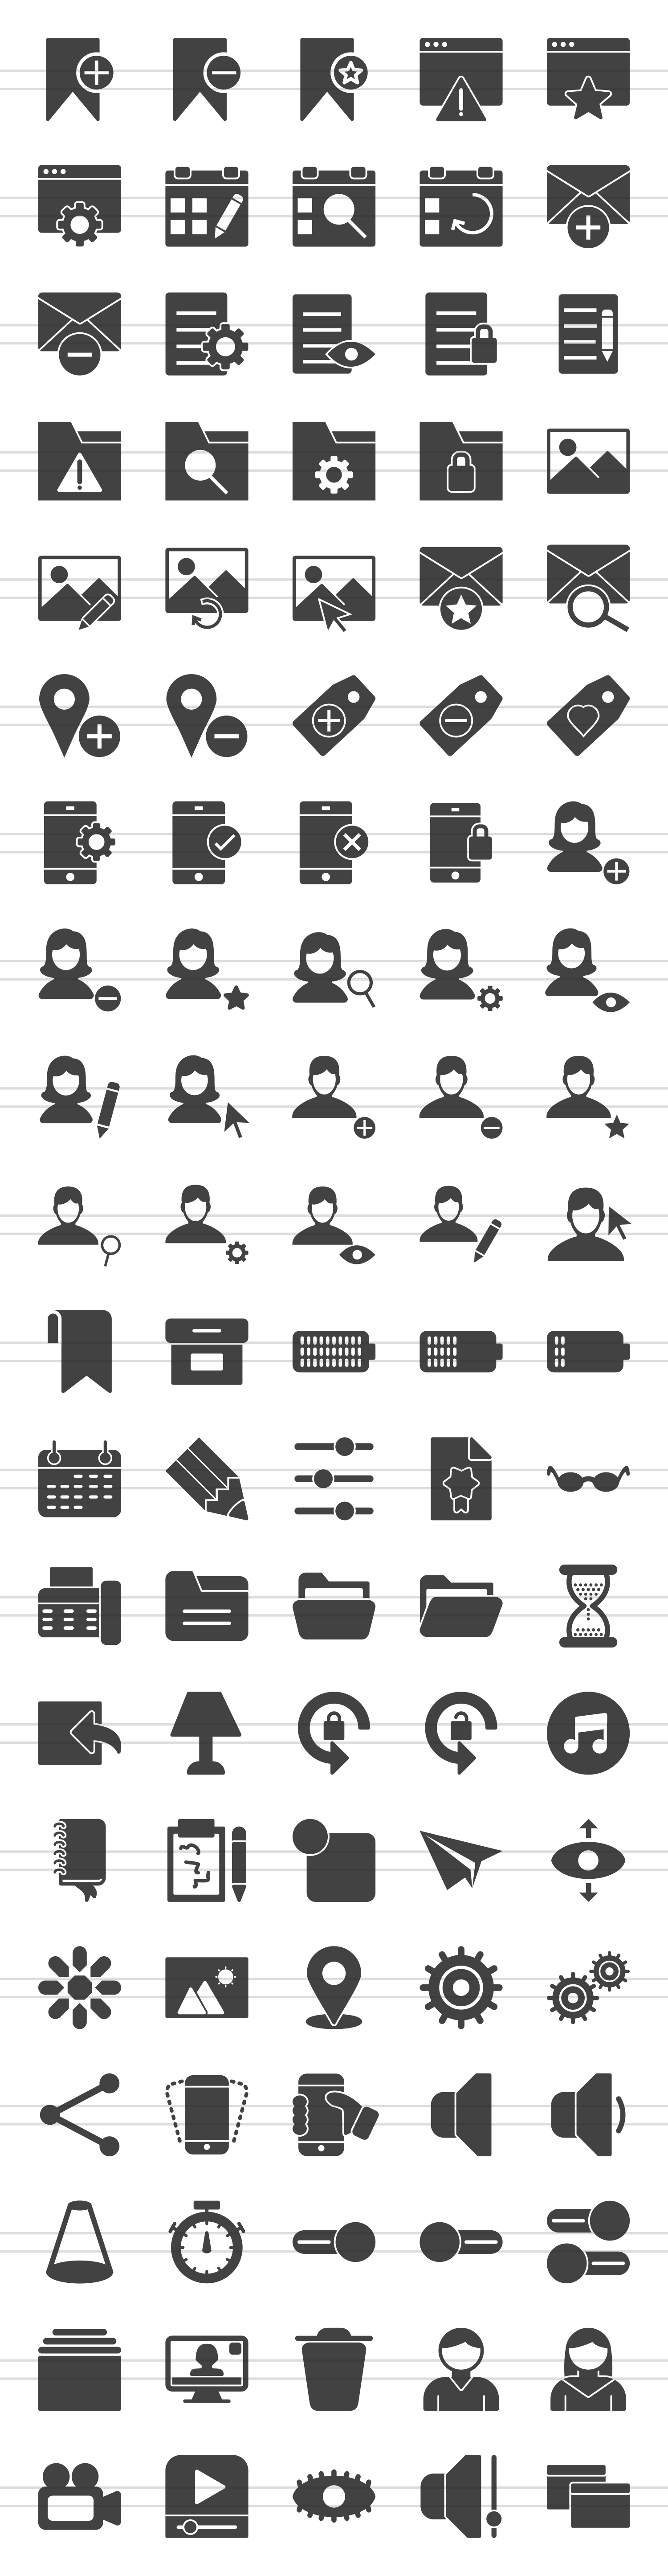 100 App & Web Interface Glyph Icons example image 2